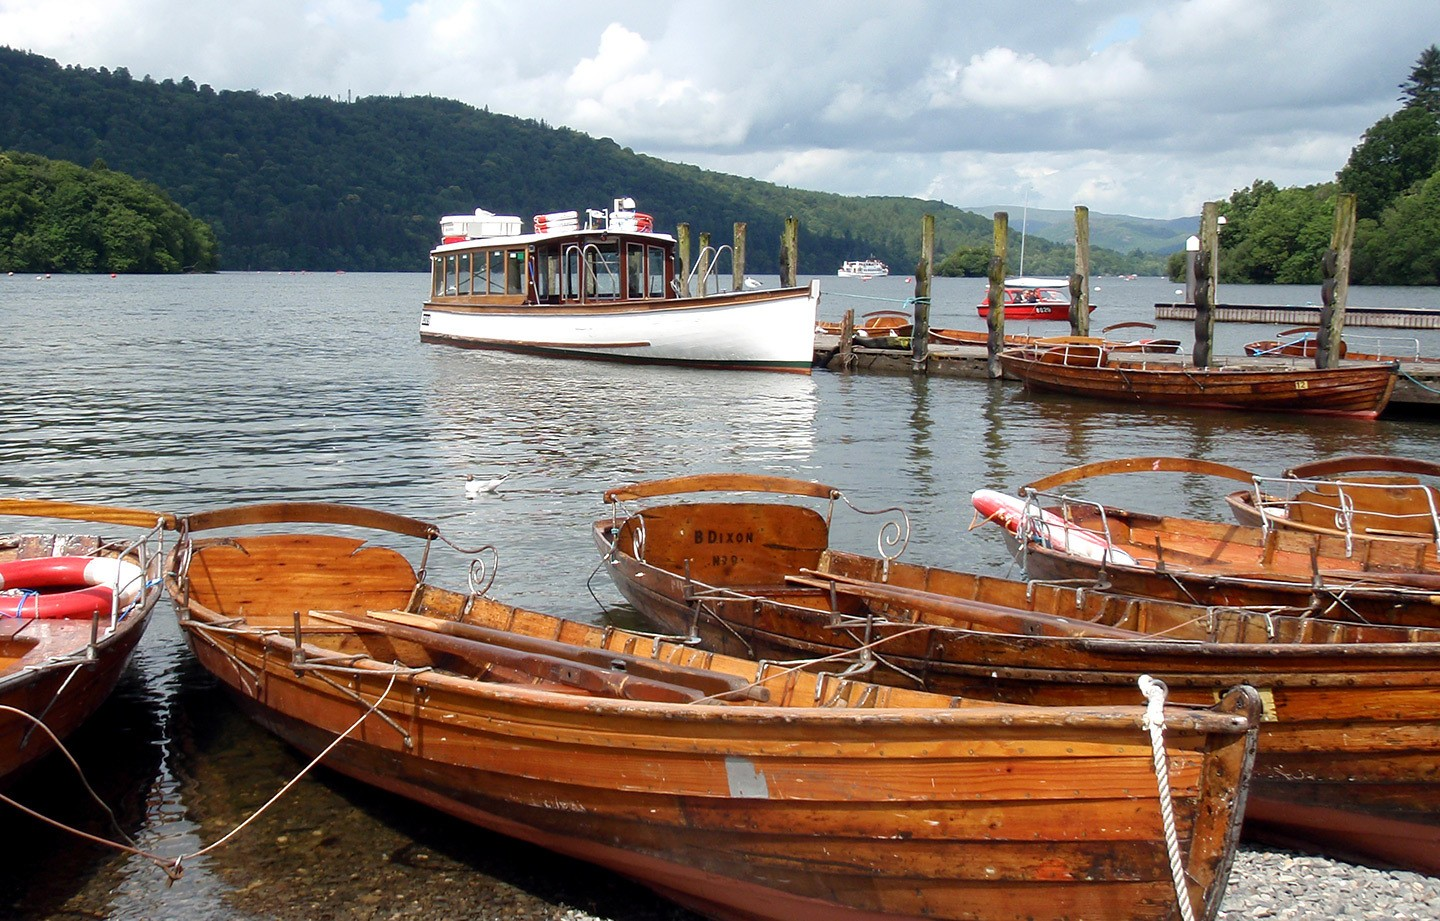 Boats on Lake Windermere in the Lake District